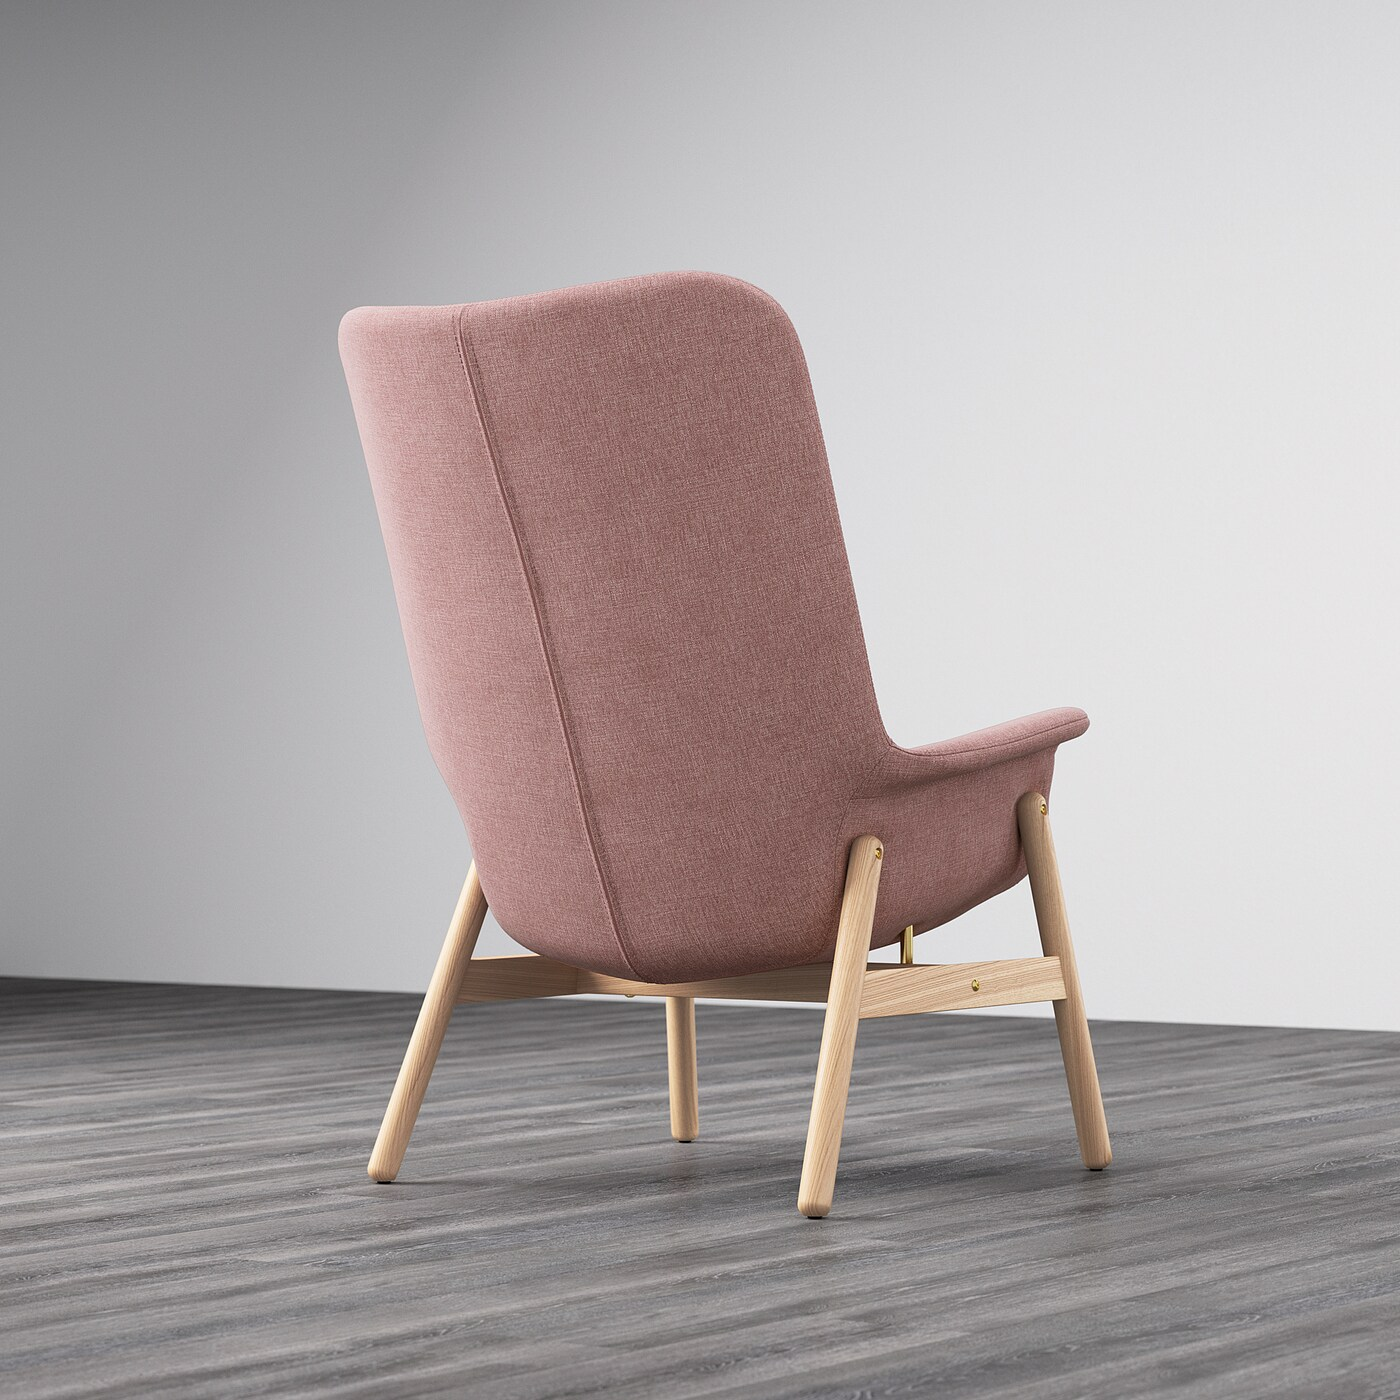 Ikea Sessel Rosa Vedbo Sessel Mit Hoher Rückenlehne - Gunnared Hell